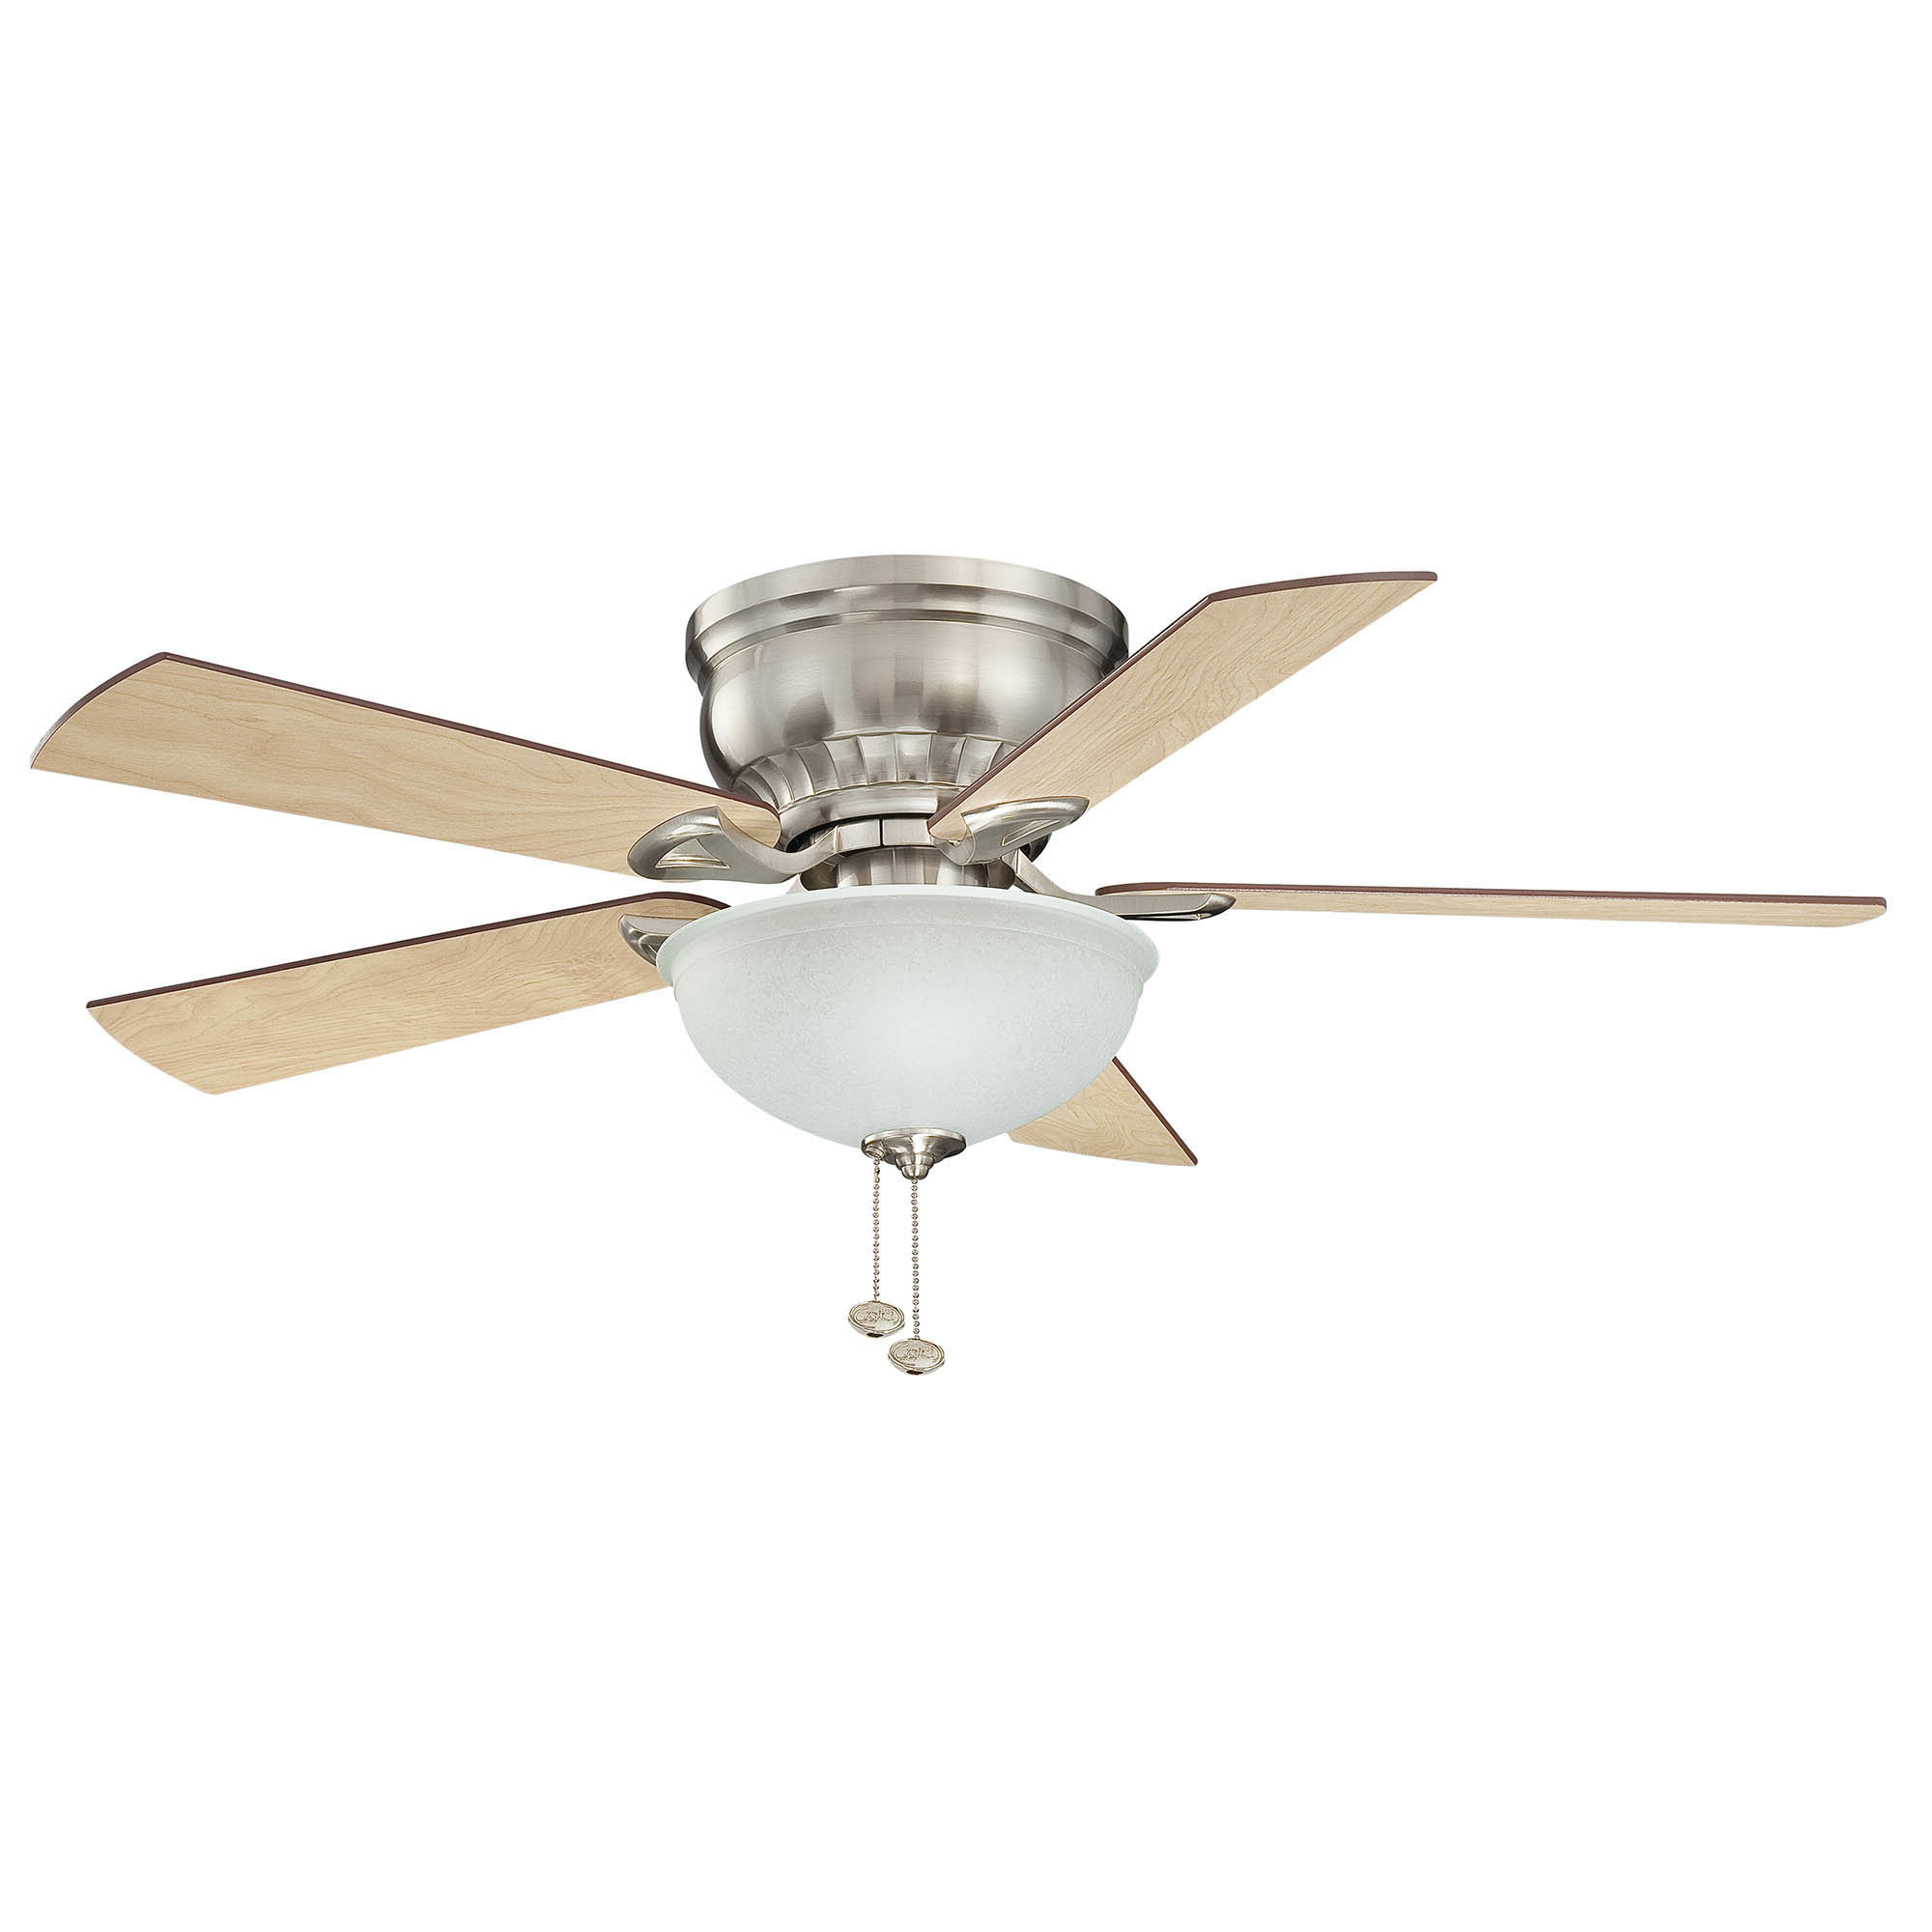 "Newest 44"" Scruggs Flushmount 5 Blade Ceiling Fan, Light Kit With Regard To Eliora 5 Blade Ceiling Fans (View 8 of 20)"